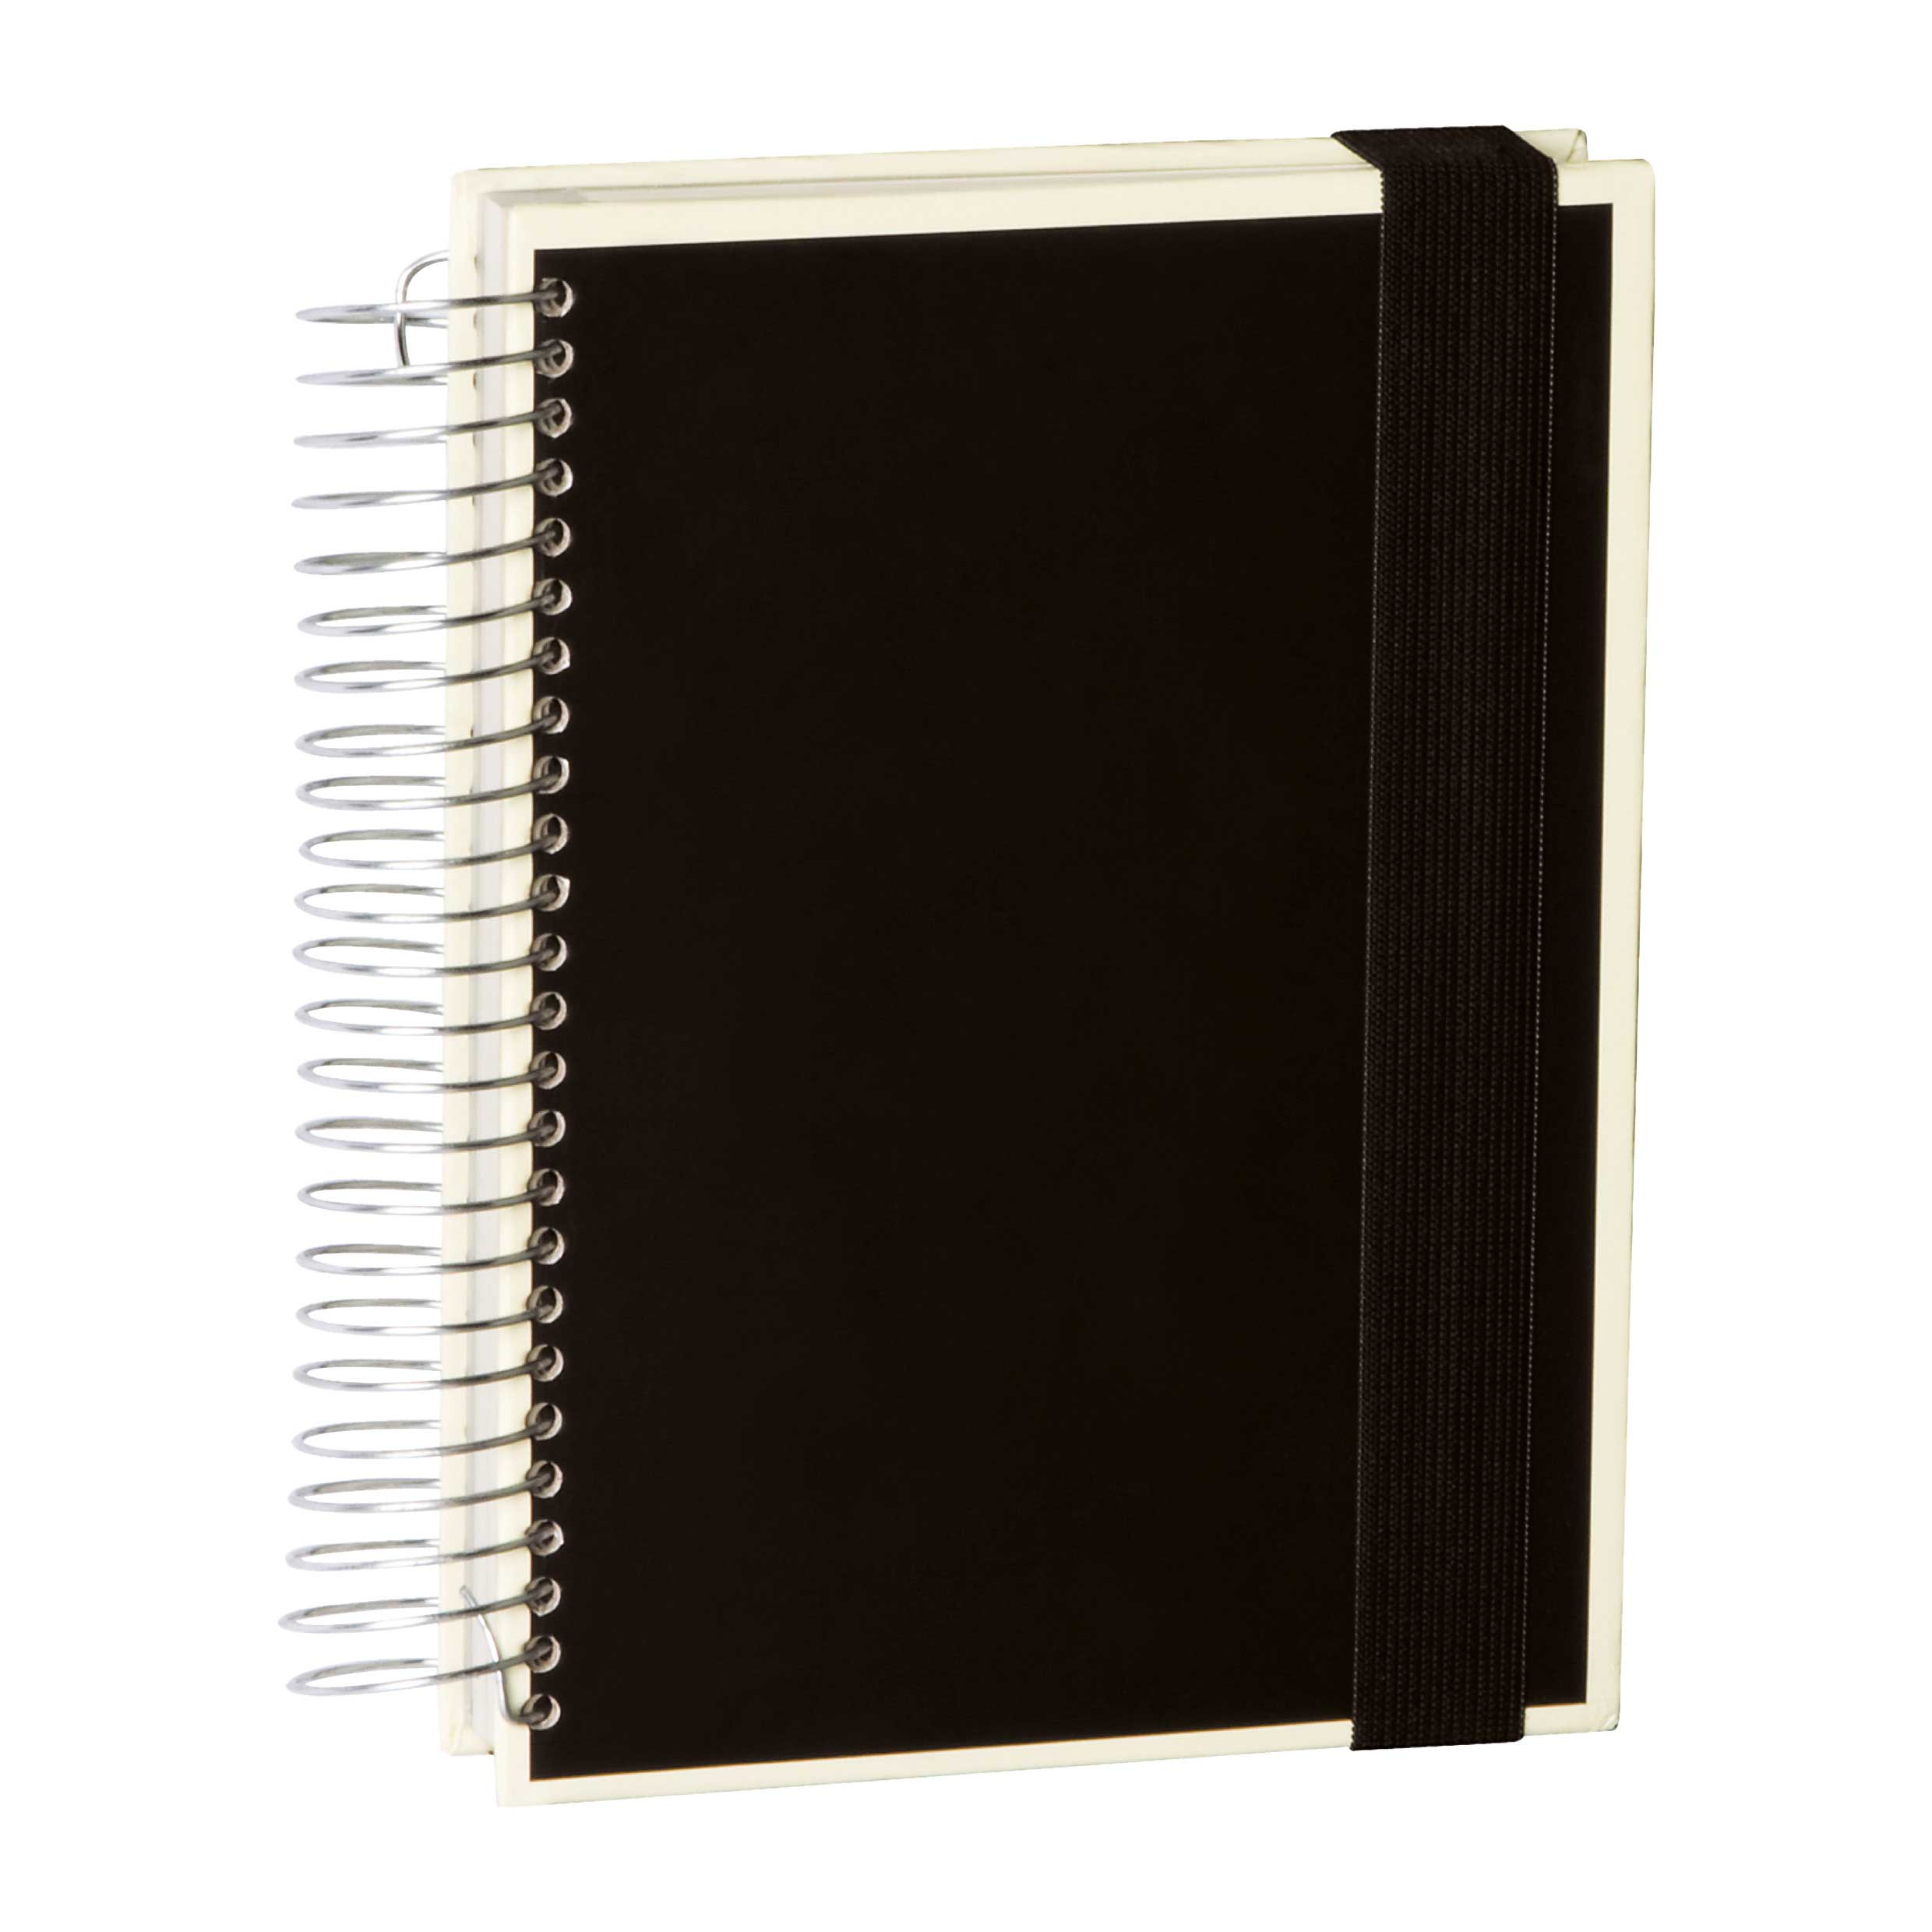 Semikolon Mucho A5 Spiral Notebook Black